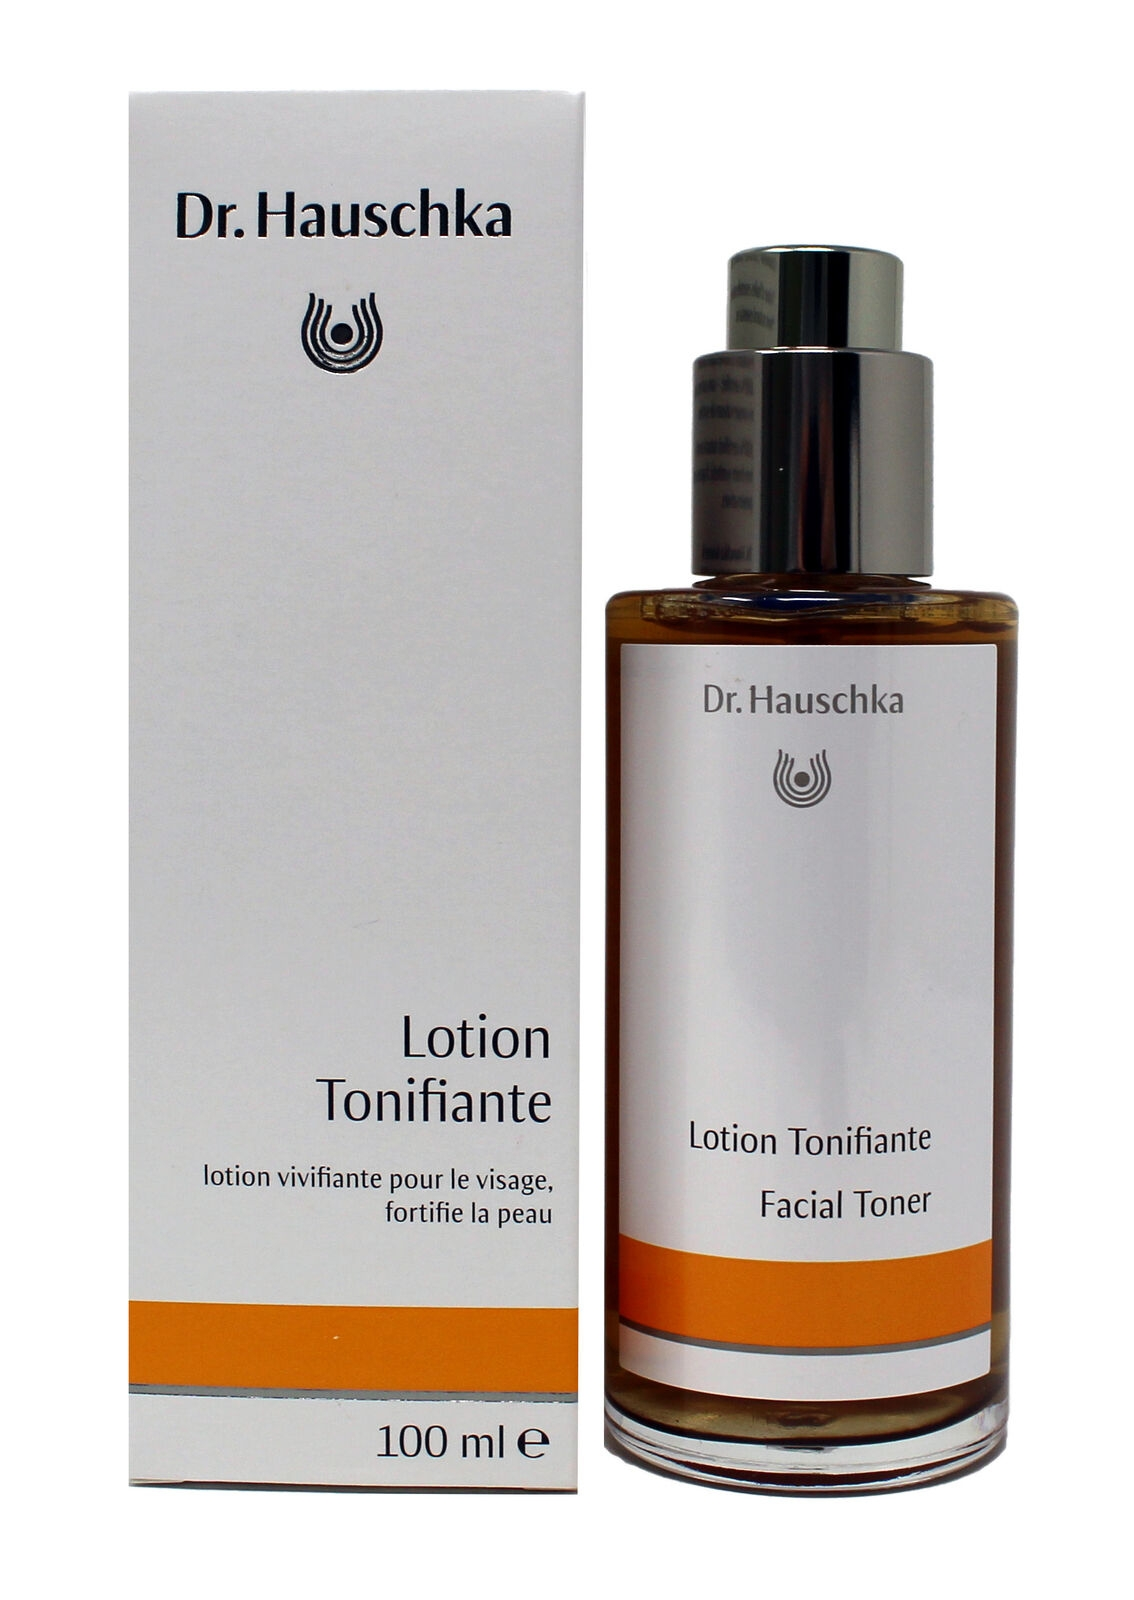 Dr. Hauschka - Lotion tonifiante - 100ml